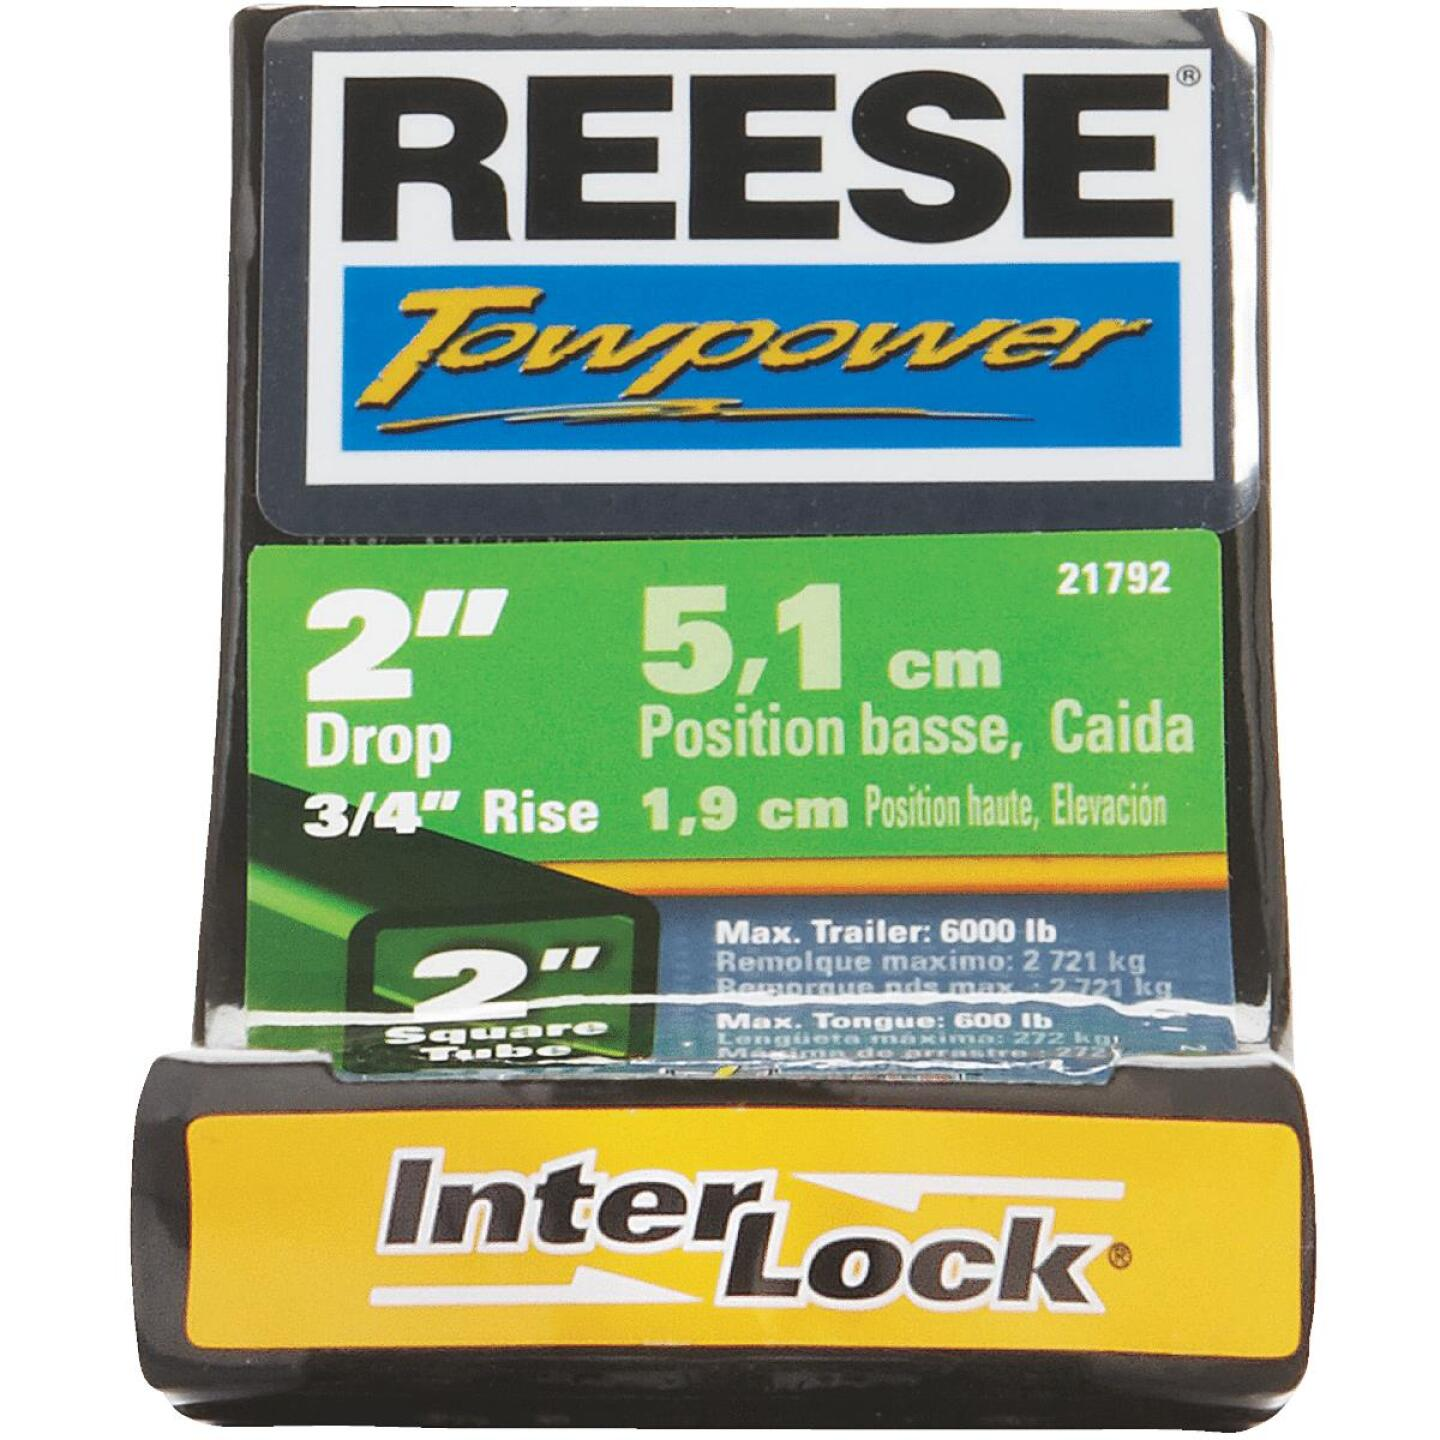 Reese Towpower 1 In. x 2 In. Drop InterLock Hitch Draw Bar Image 2